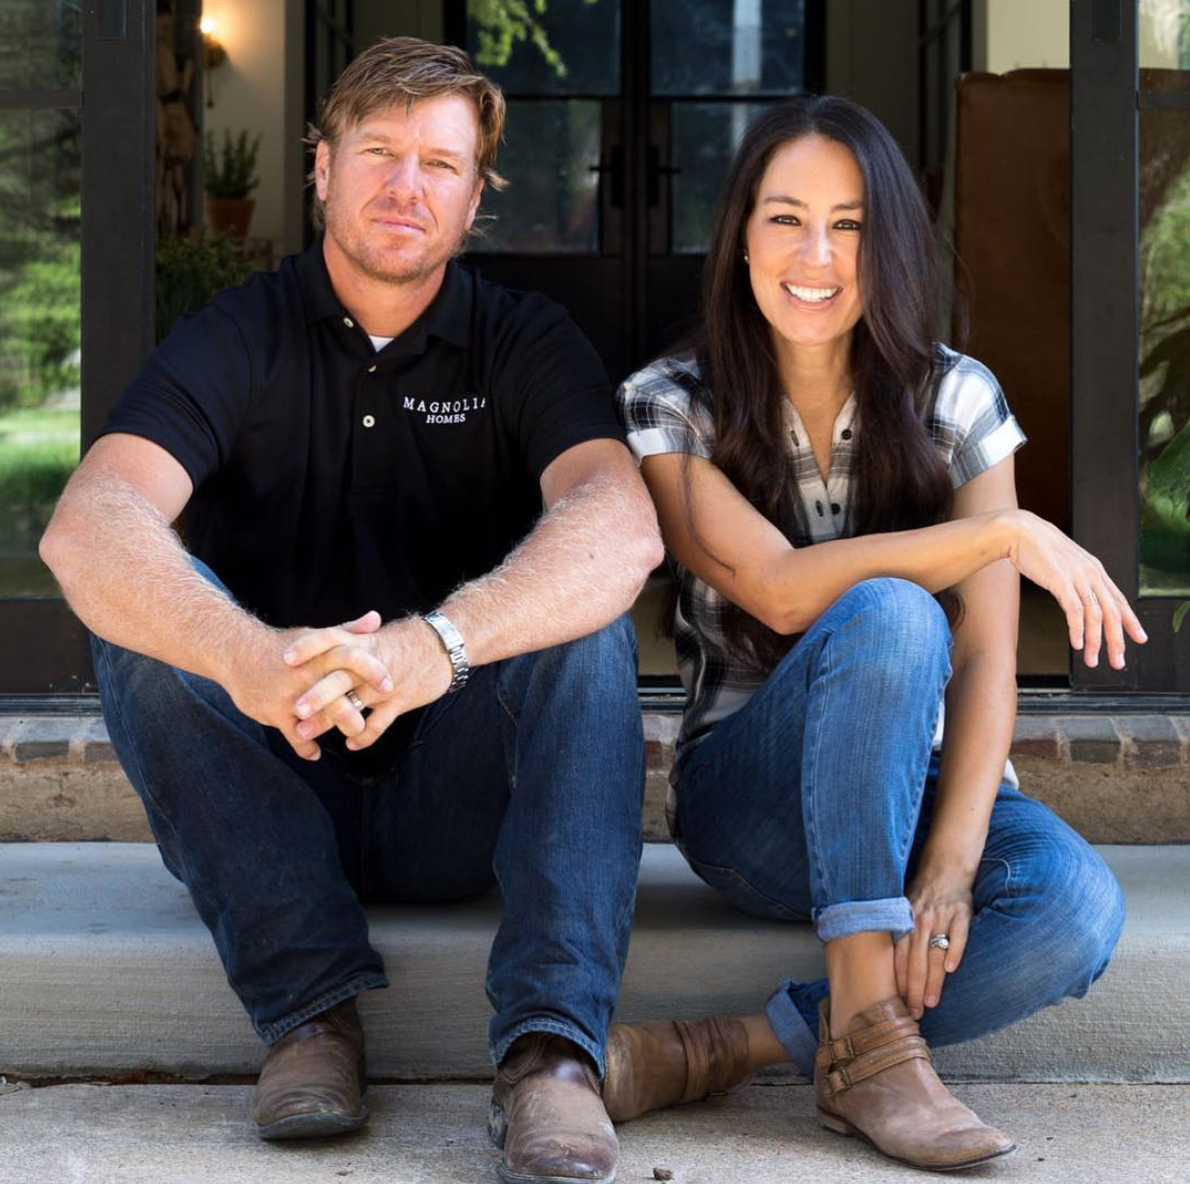 Shopping: Get the Look: Fixer Upper's Joanna Gaines' Signature Style Staples